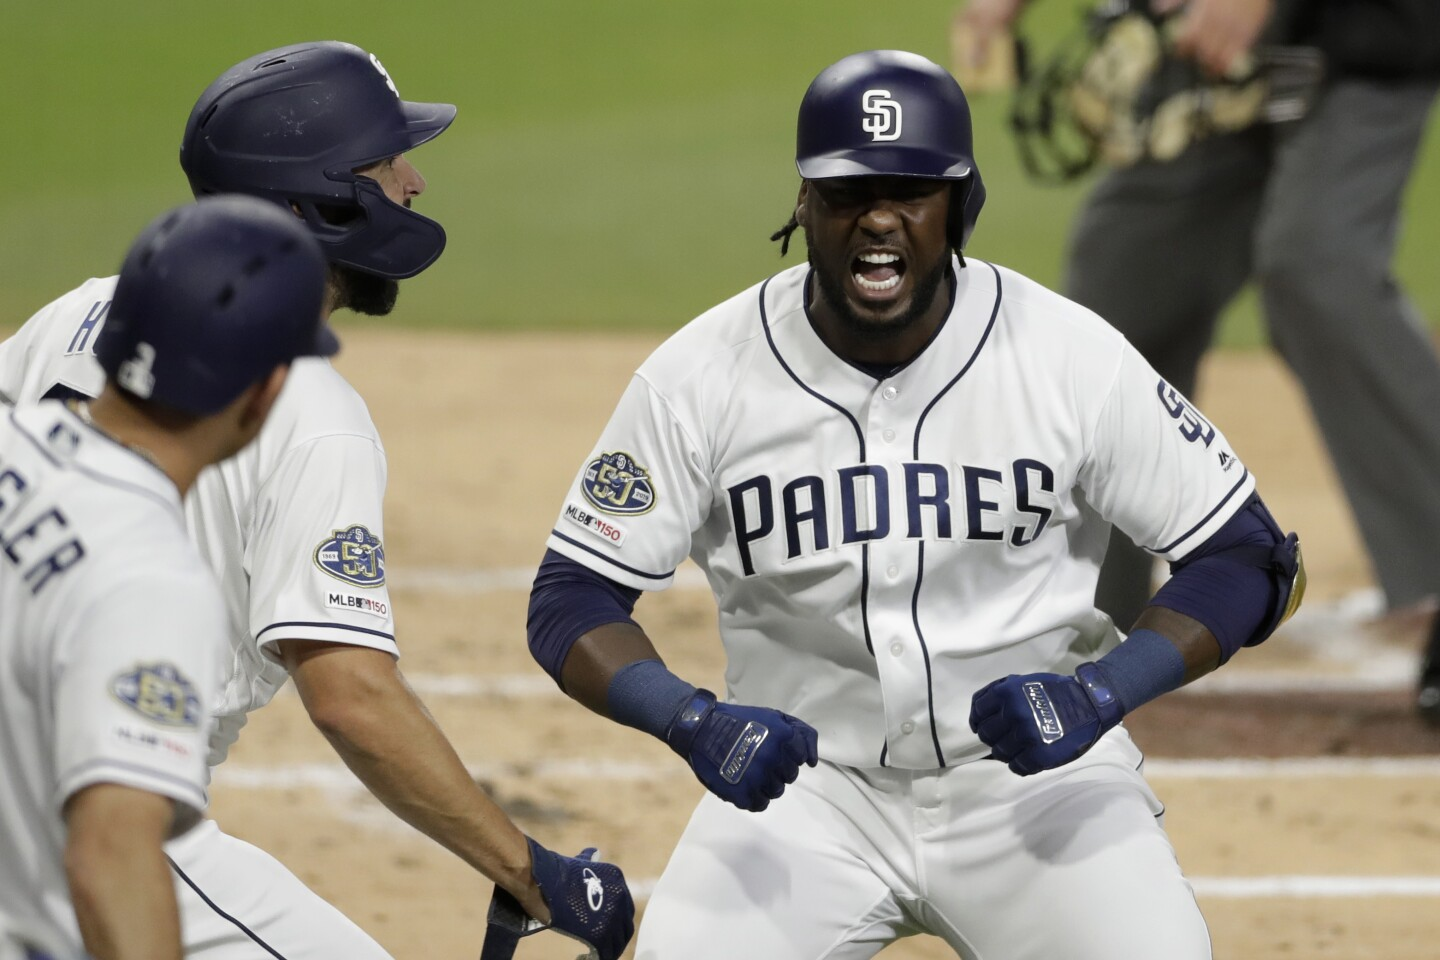 The Padres' Franmil Reyes, right, reacts with teammates after hitting a two-run home run during the second inning of a baseball game against the Seattle Mariners Tuesday, April 23, 2019, in San Diego.